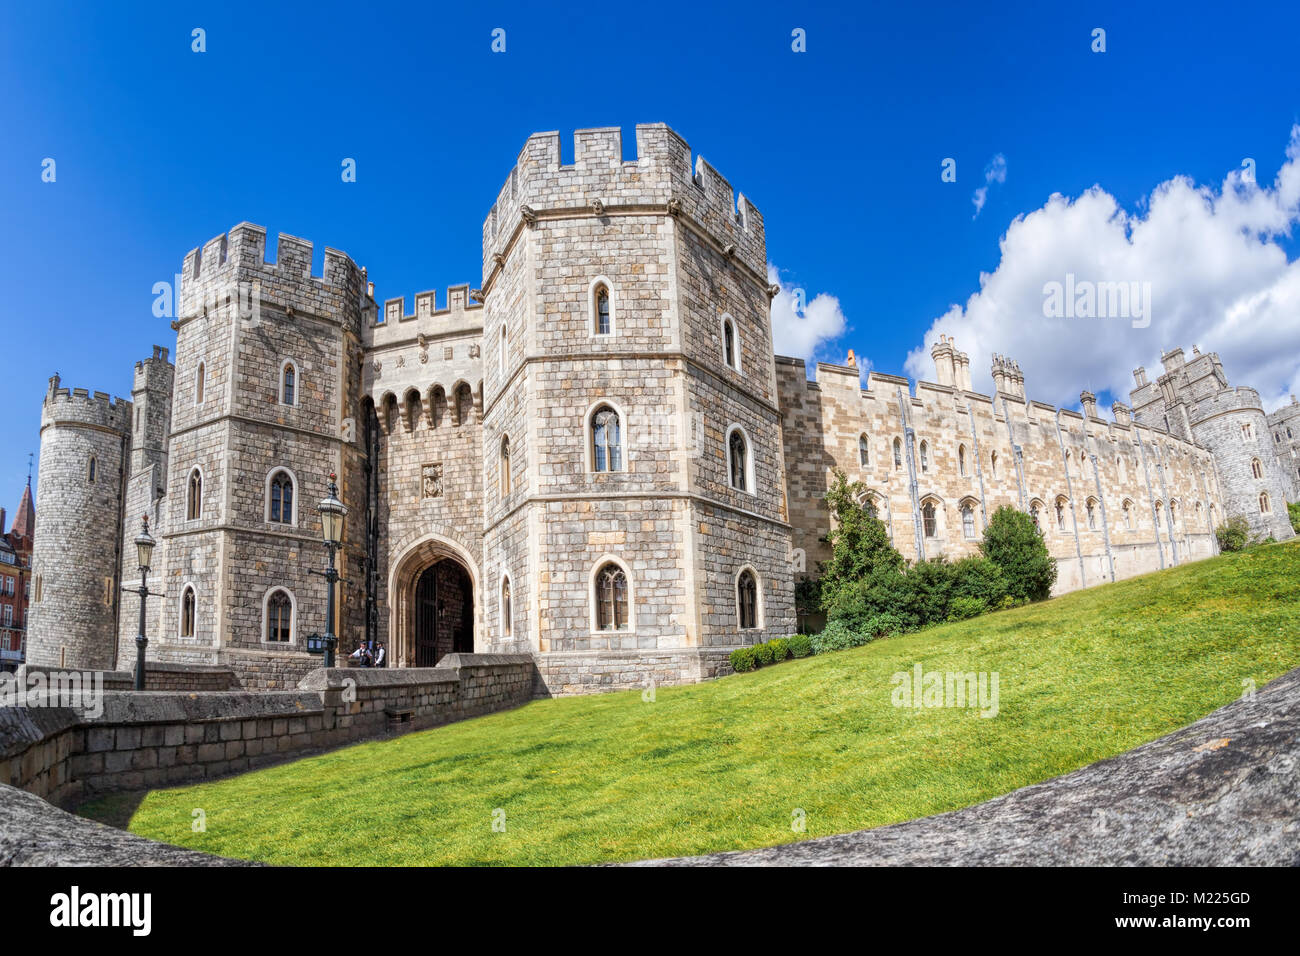 Windsor castle near the London in England, United Kingdom - Stock Image